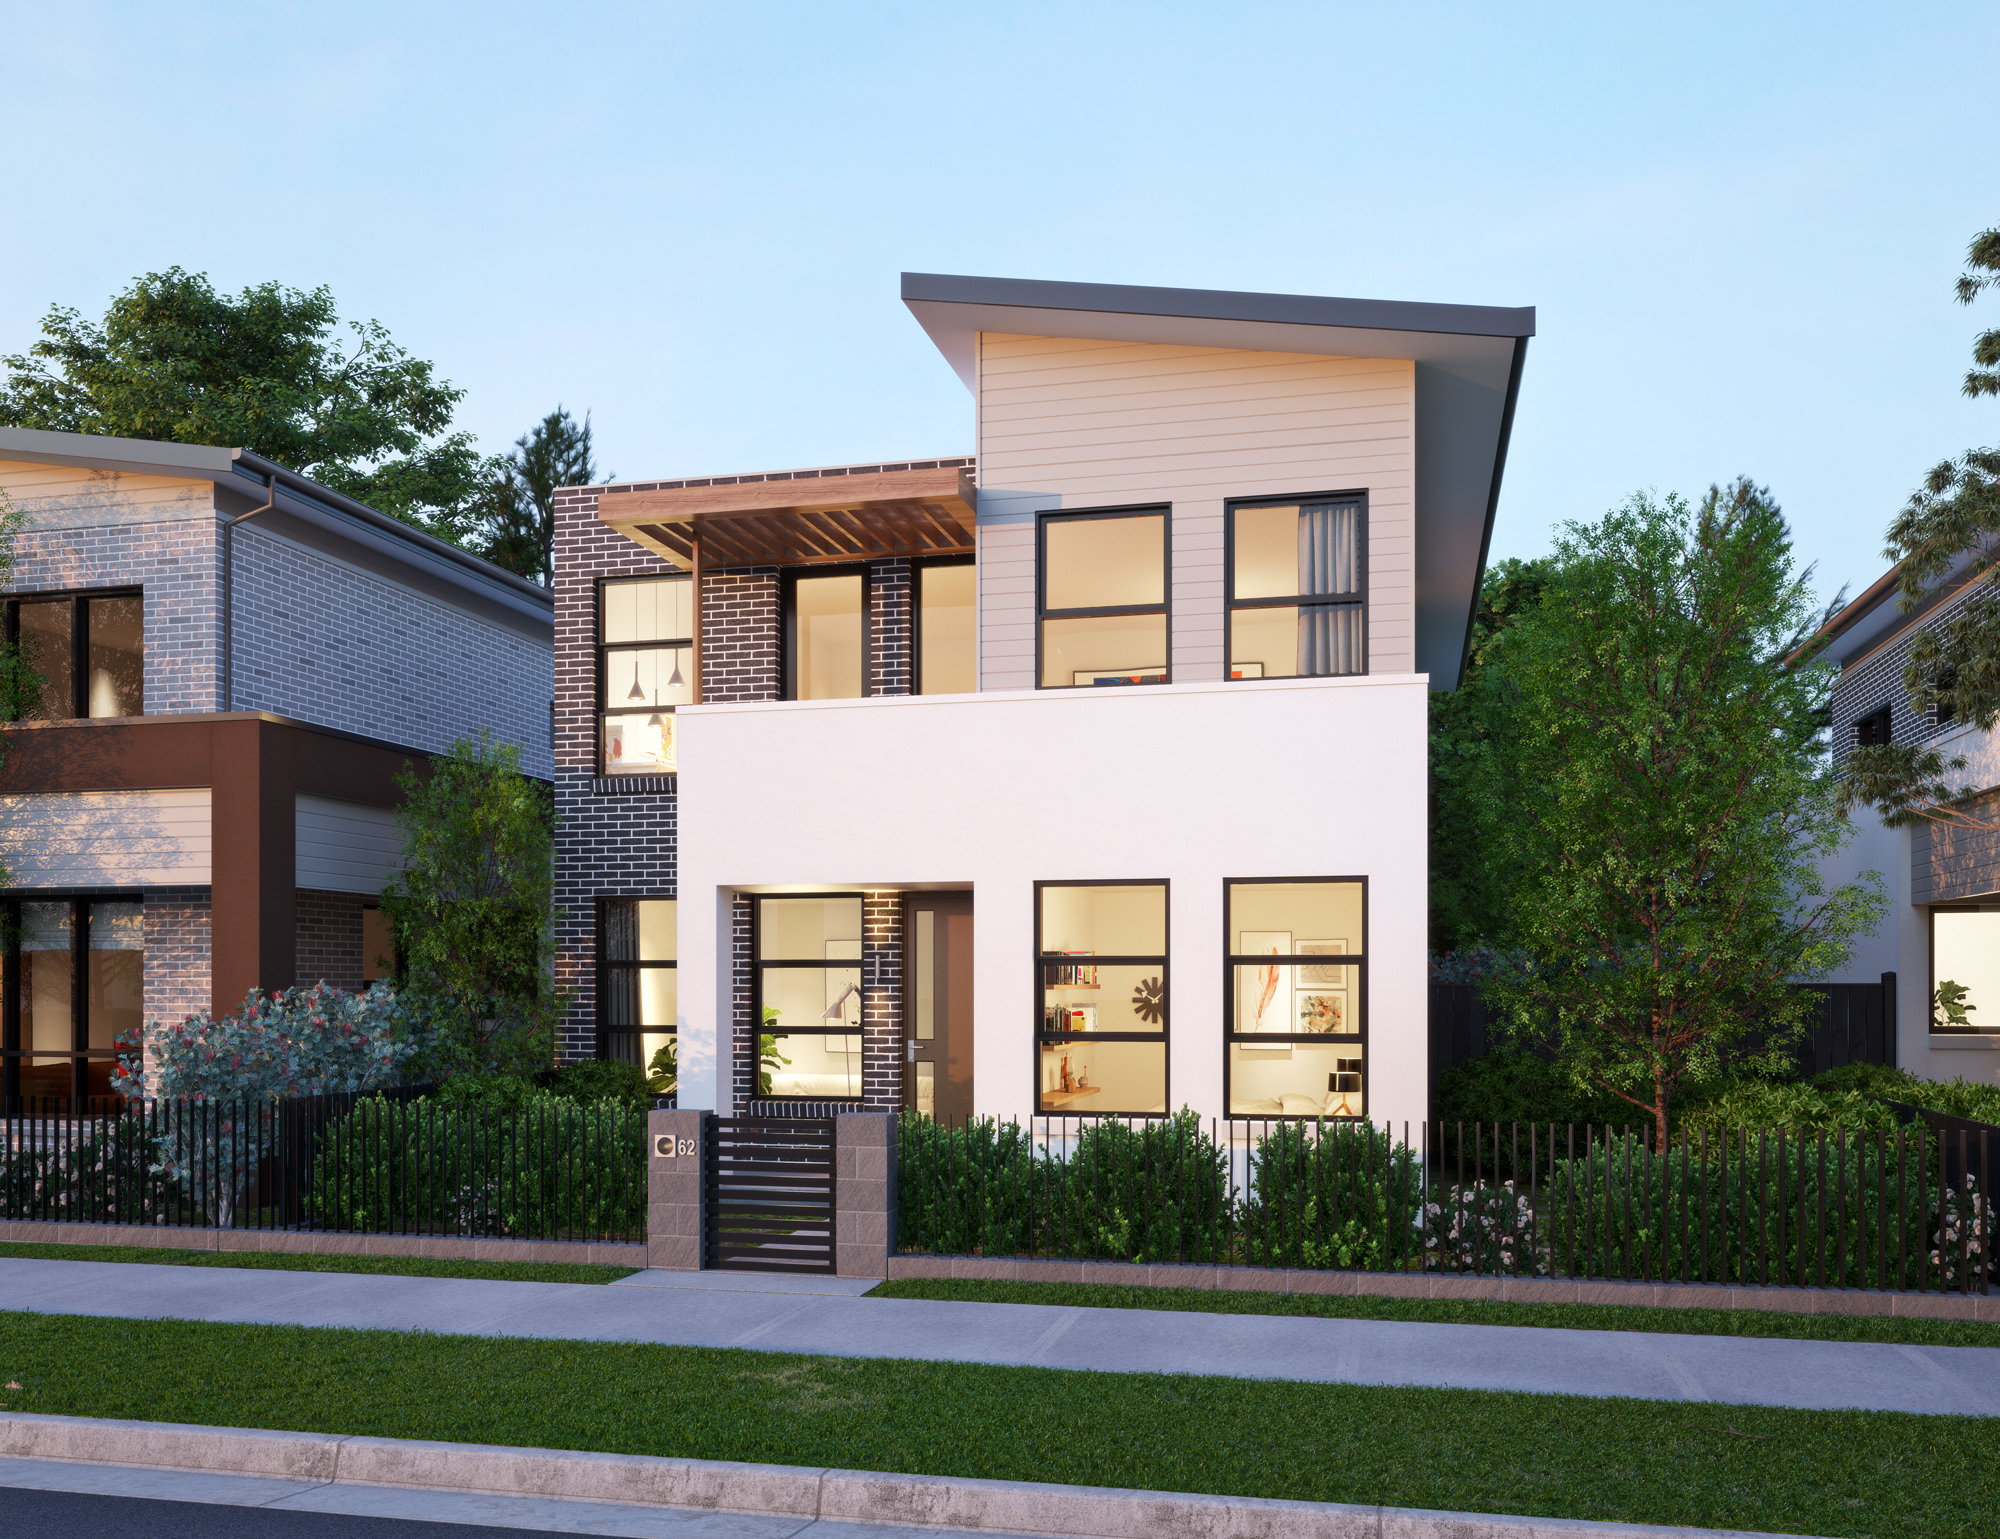 Townhouse for sale MARSDEN PARK NSW 2765 | myland.com.au